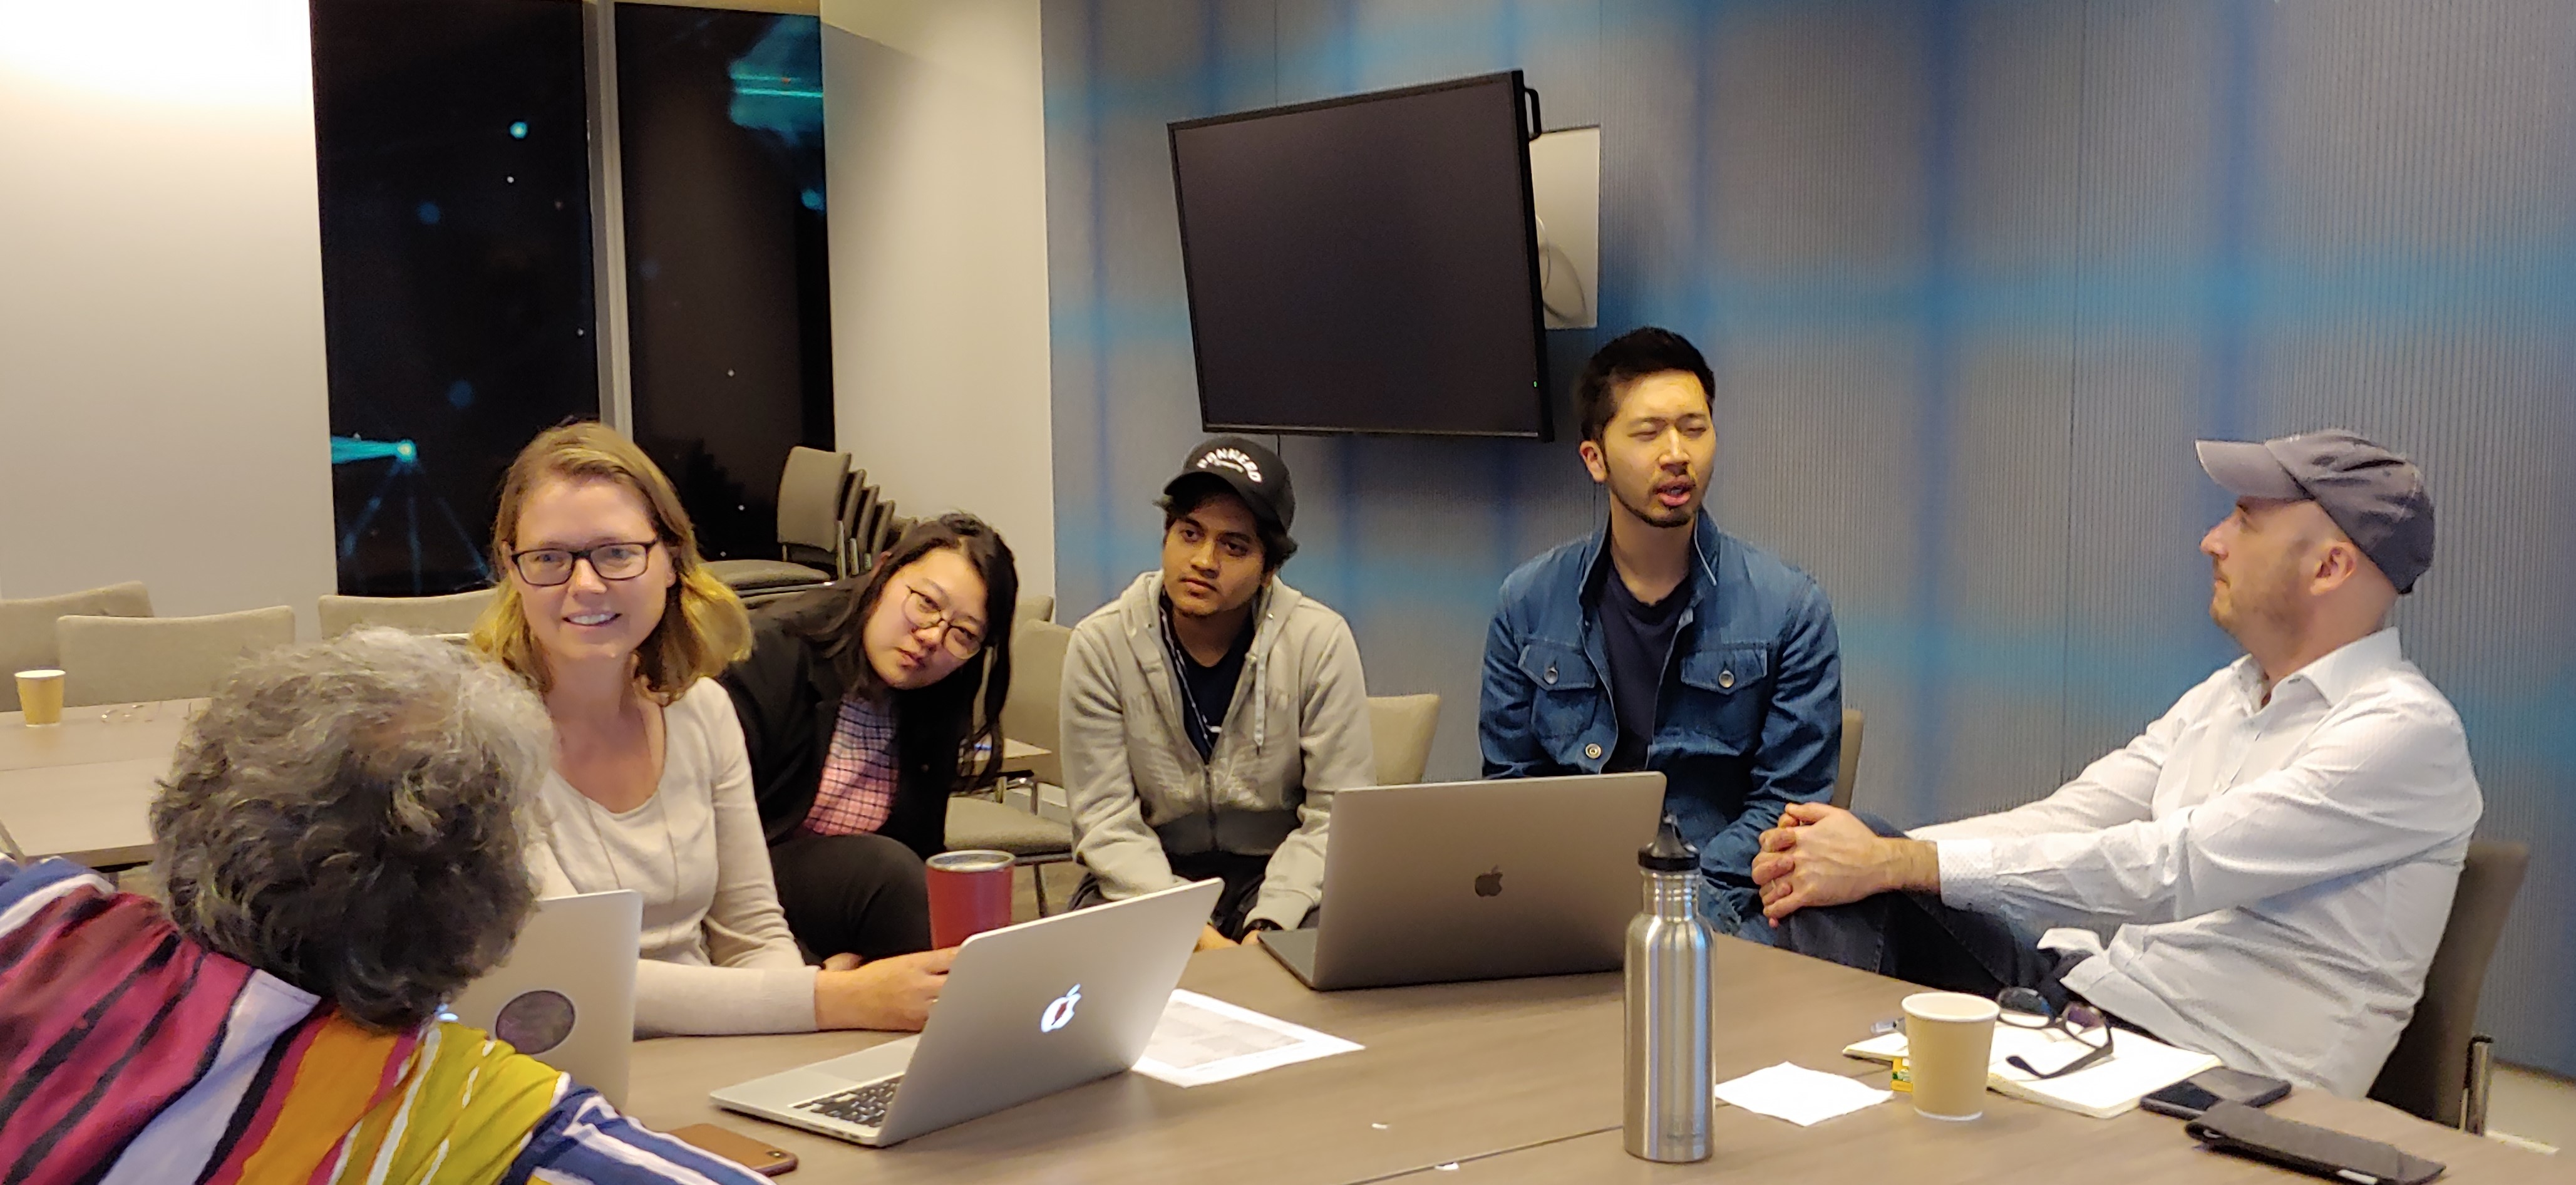 A picture of students and academics discussing the design of the Interaction Media course.